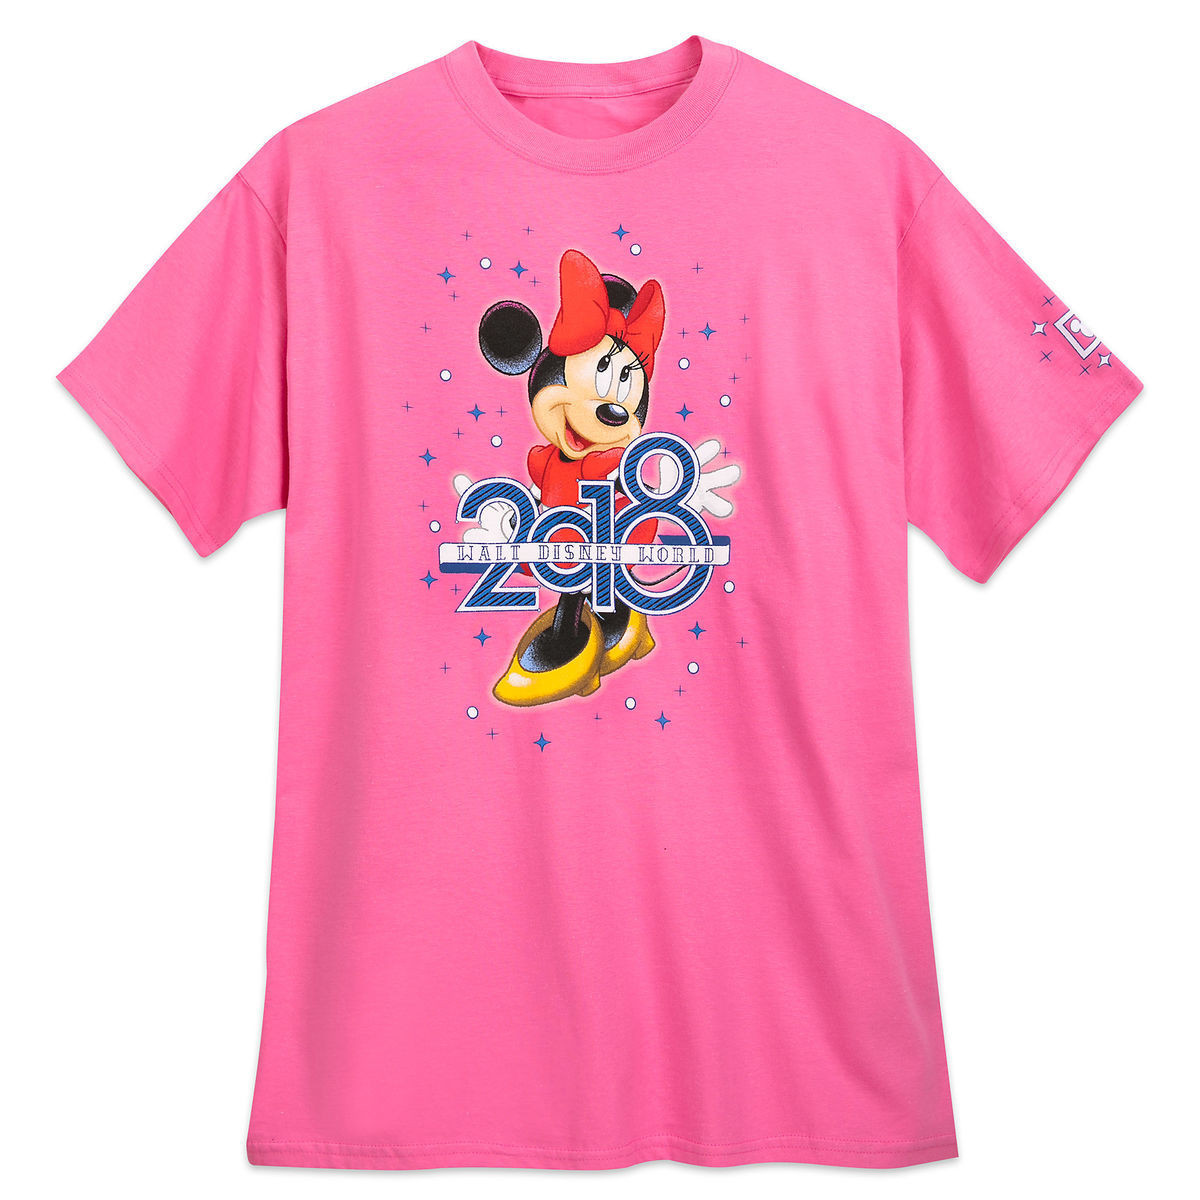 Minnie Mouse T Shirt For Adults